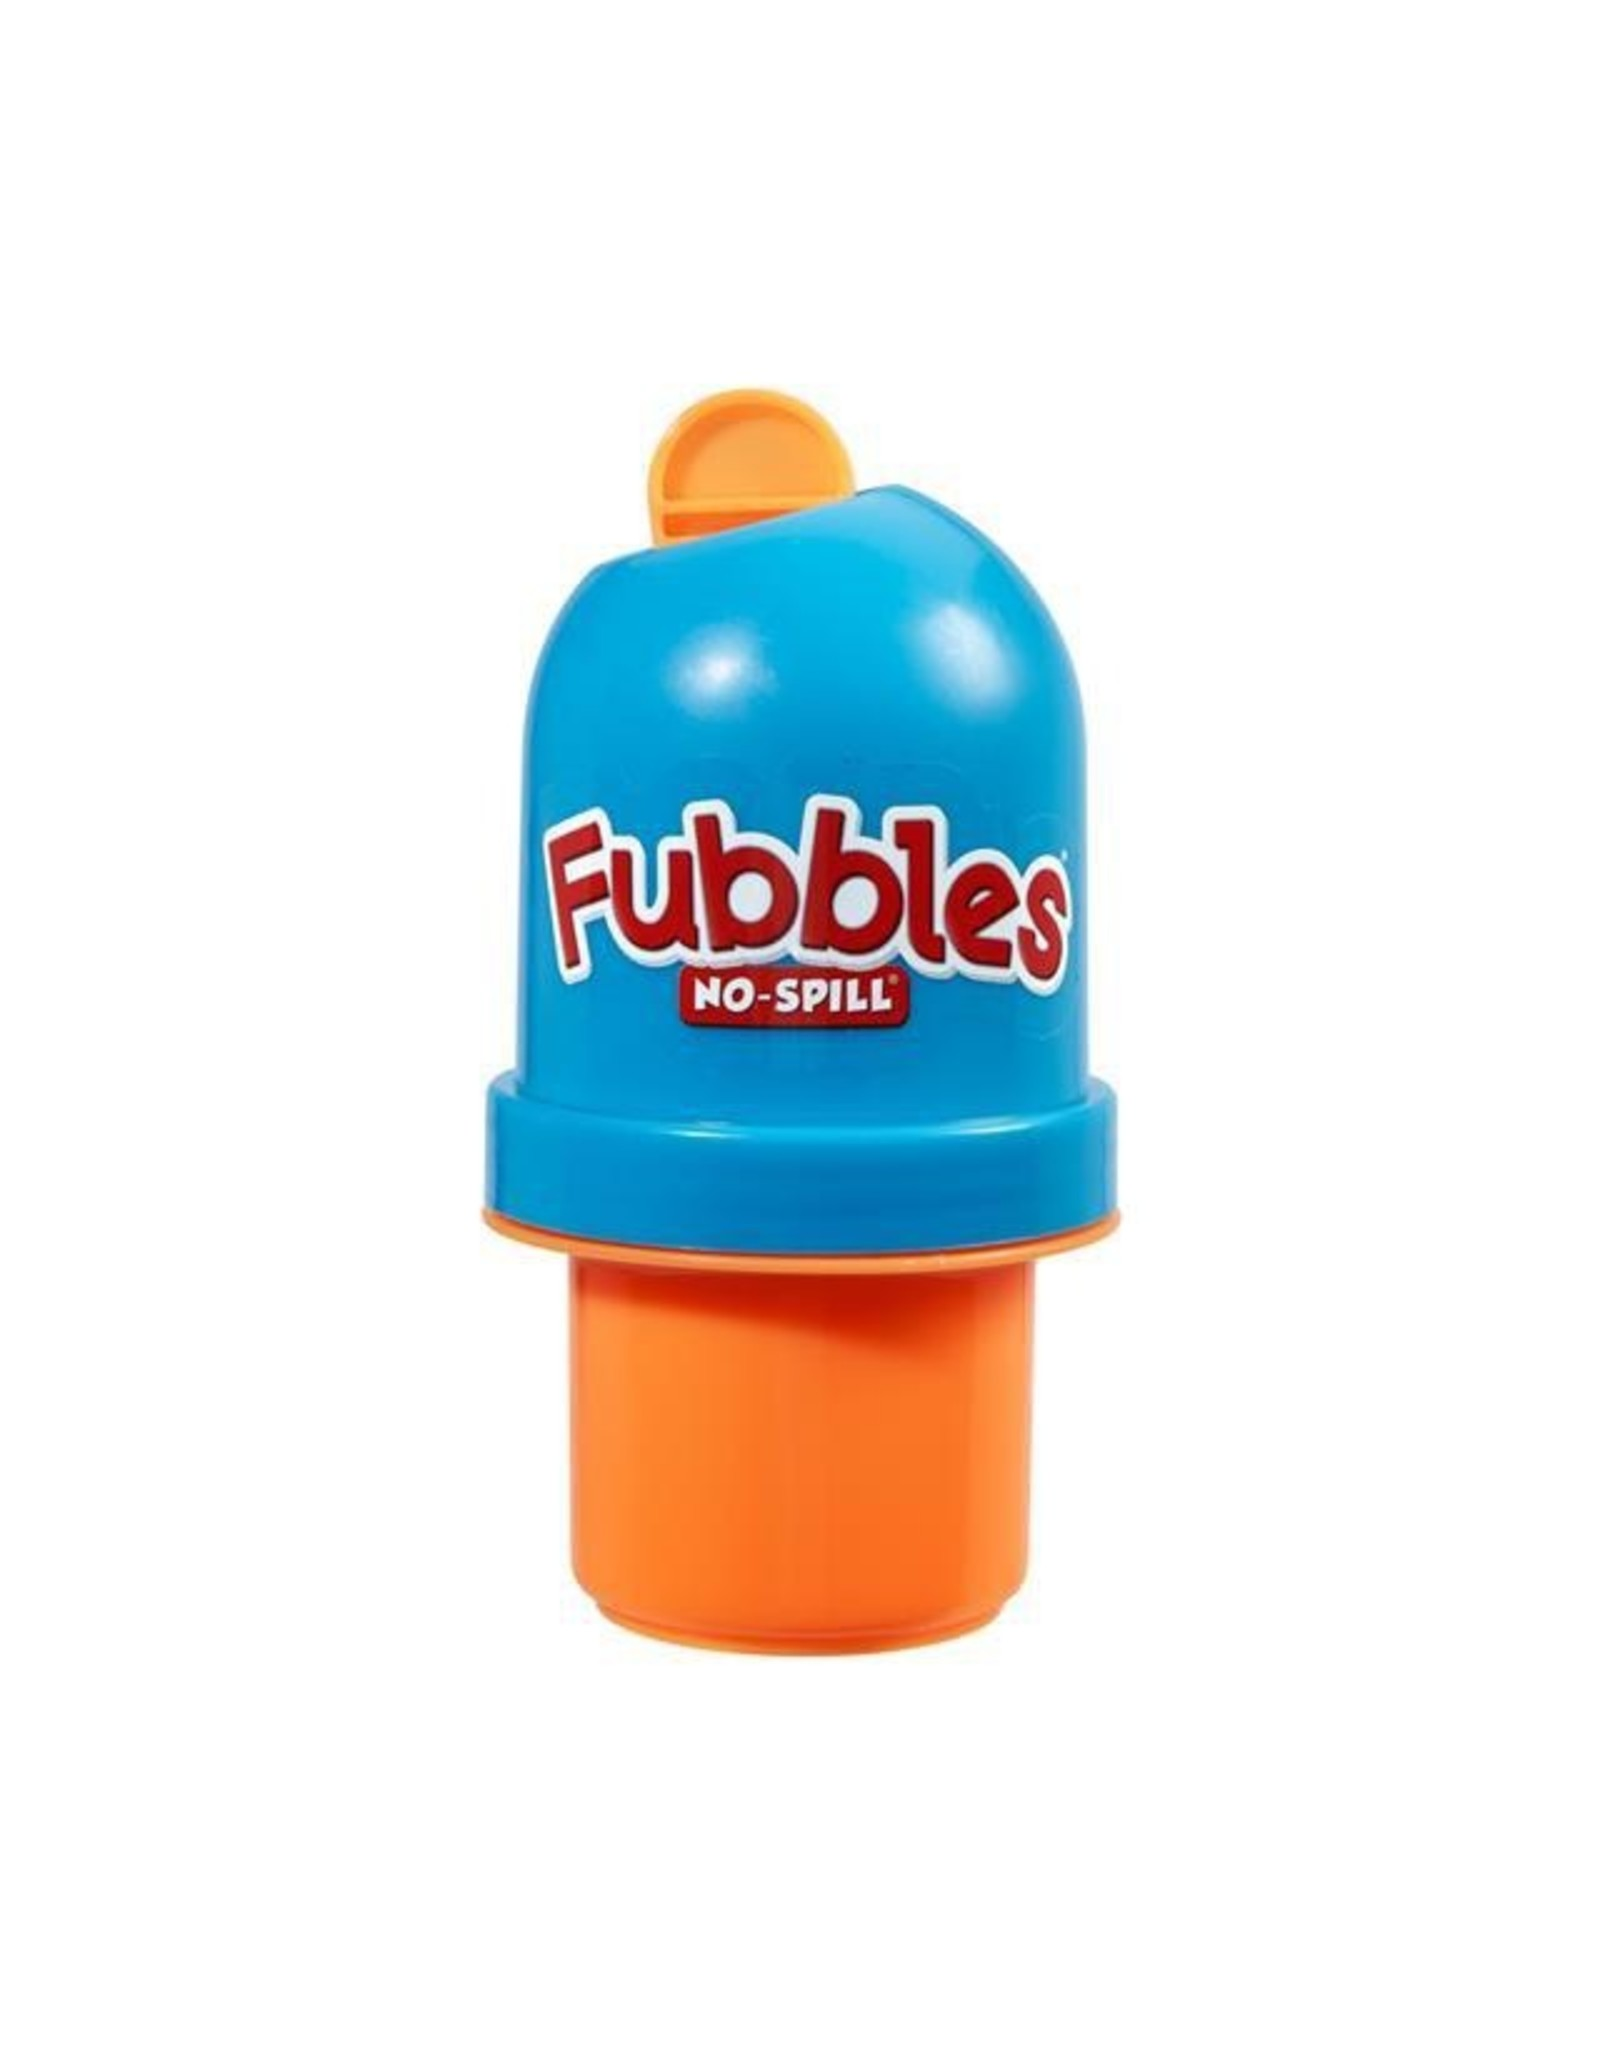 Fubbles FUBBLES BUBBLE TUMBLER ORIGINAL NO SPILL